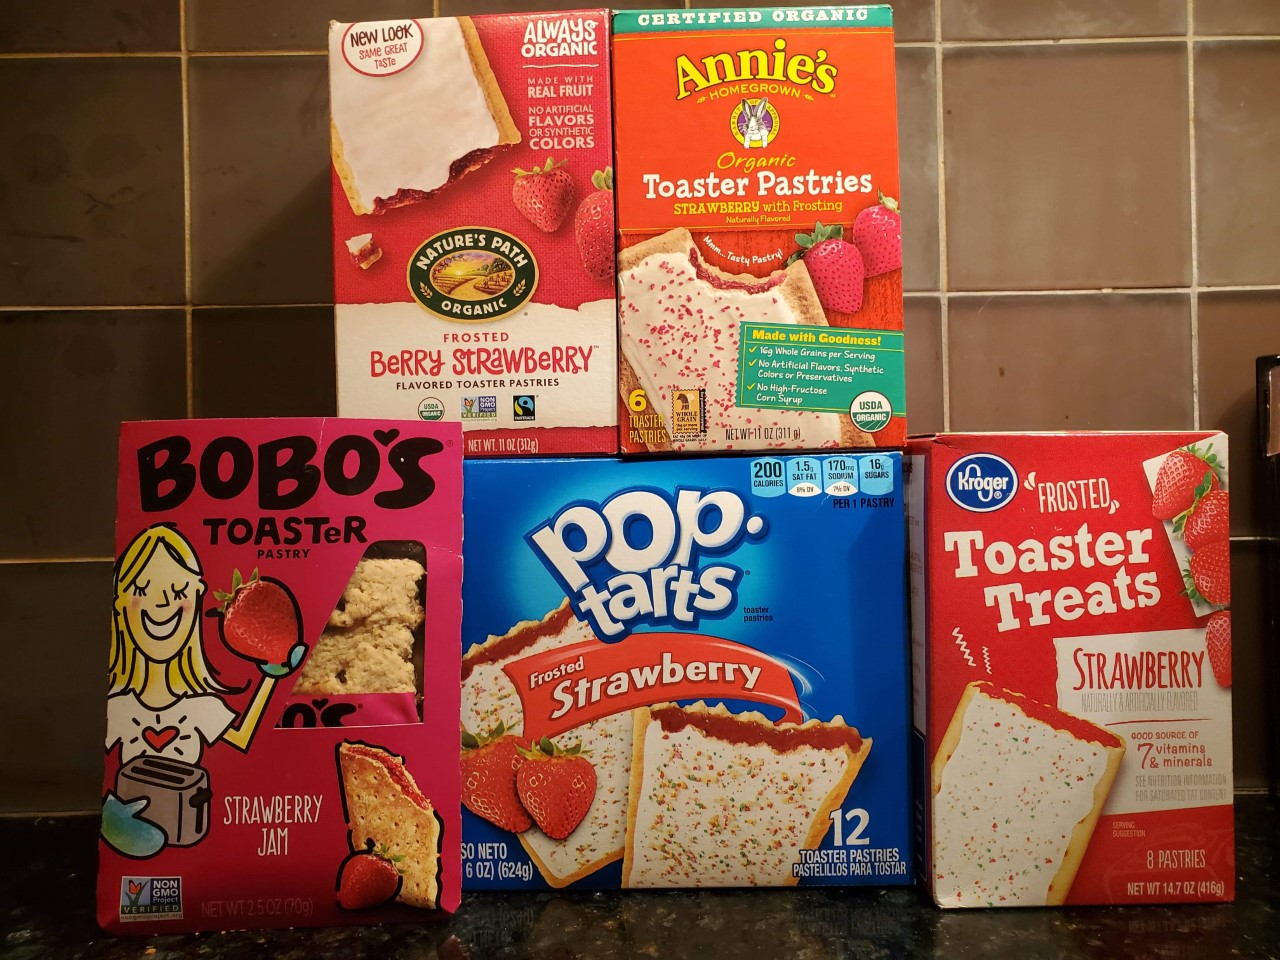 We Tried 5 Brands of Toaster Pastries So You Don't Have To